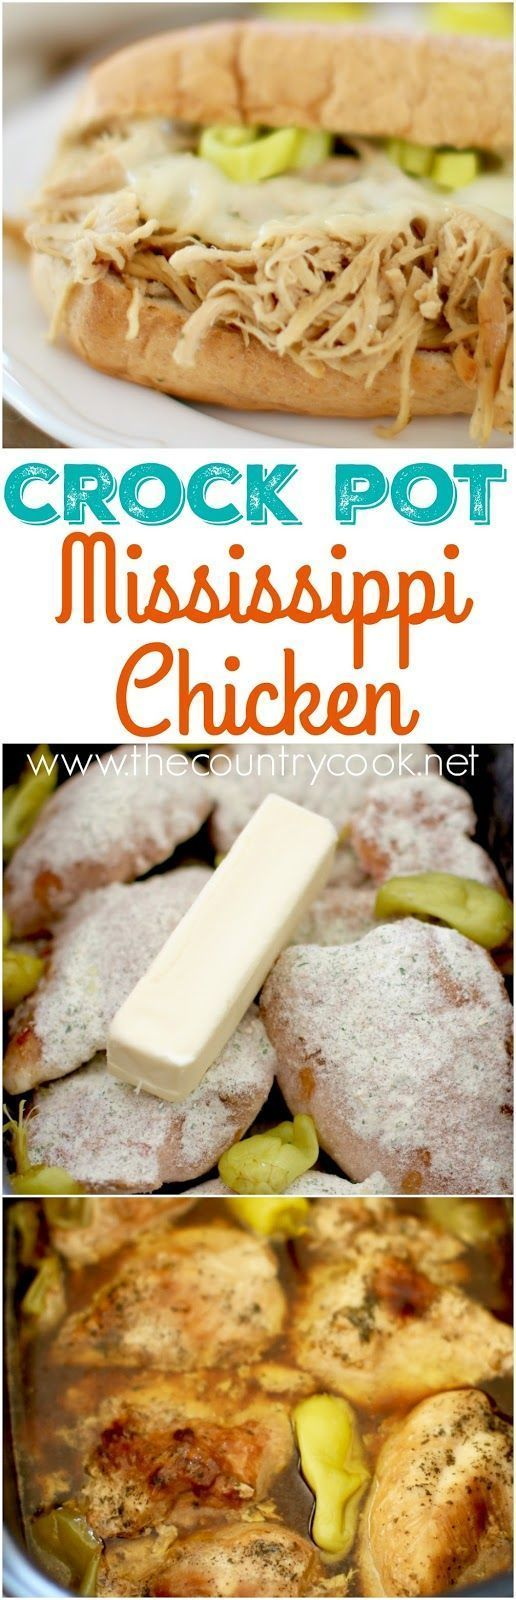 Crock Pot Mississippi Chicken | The Country Cook